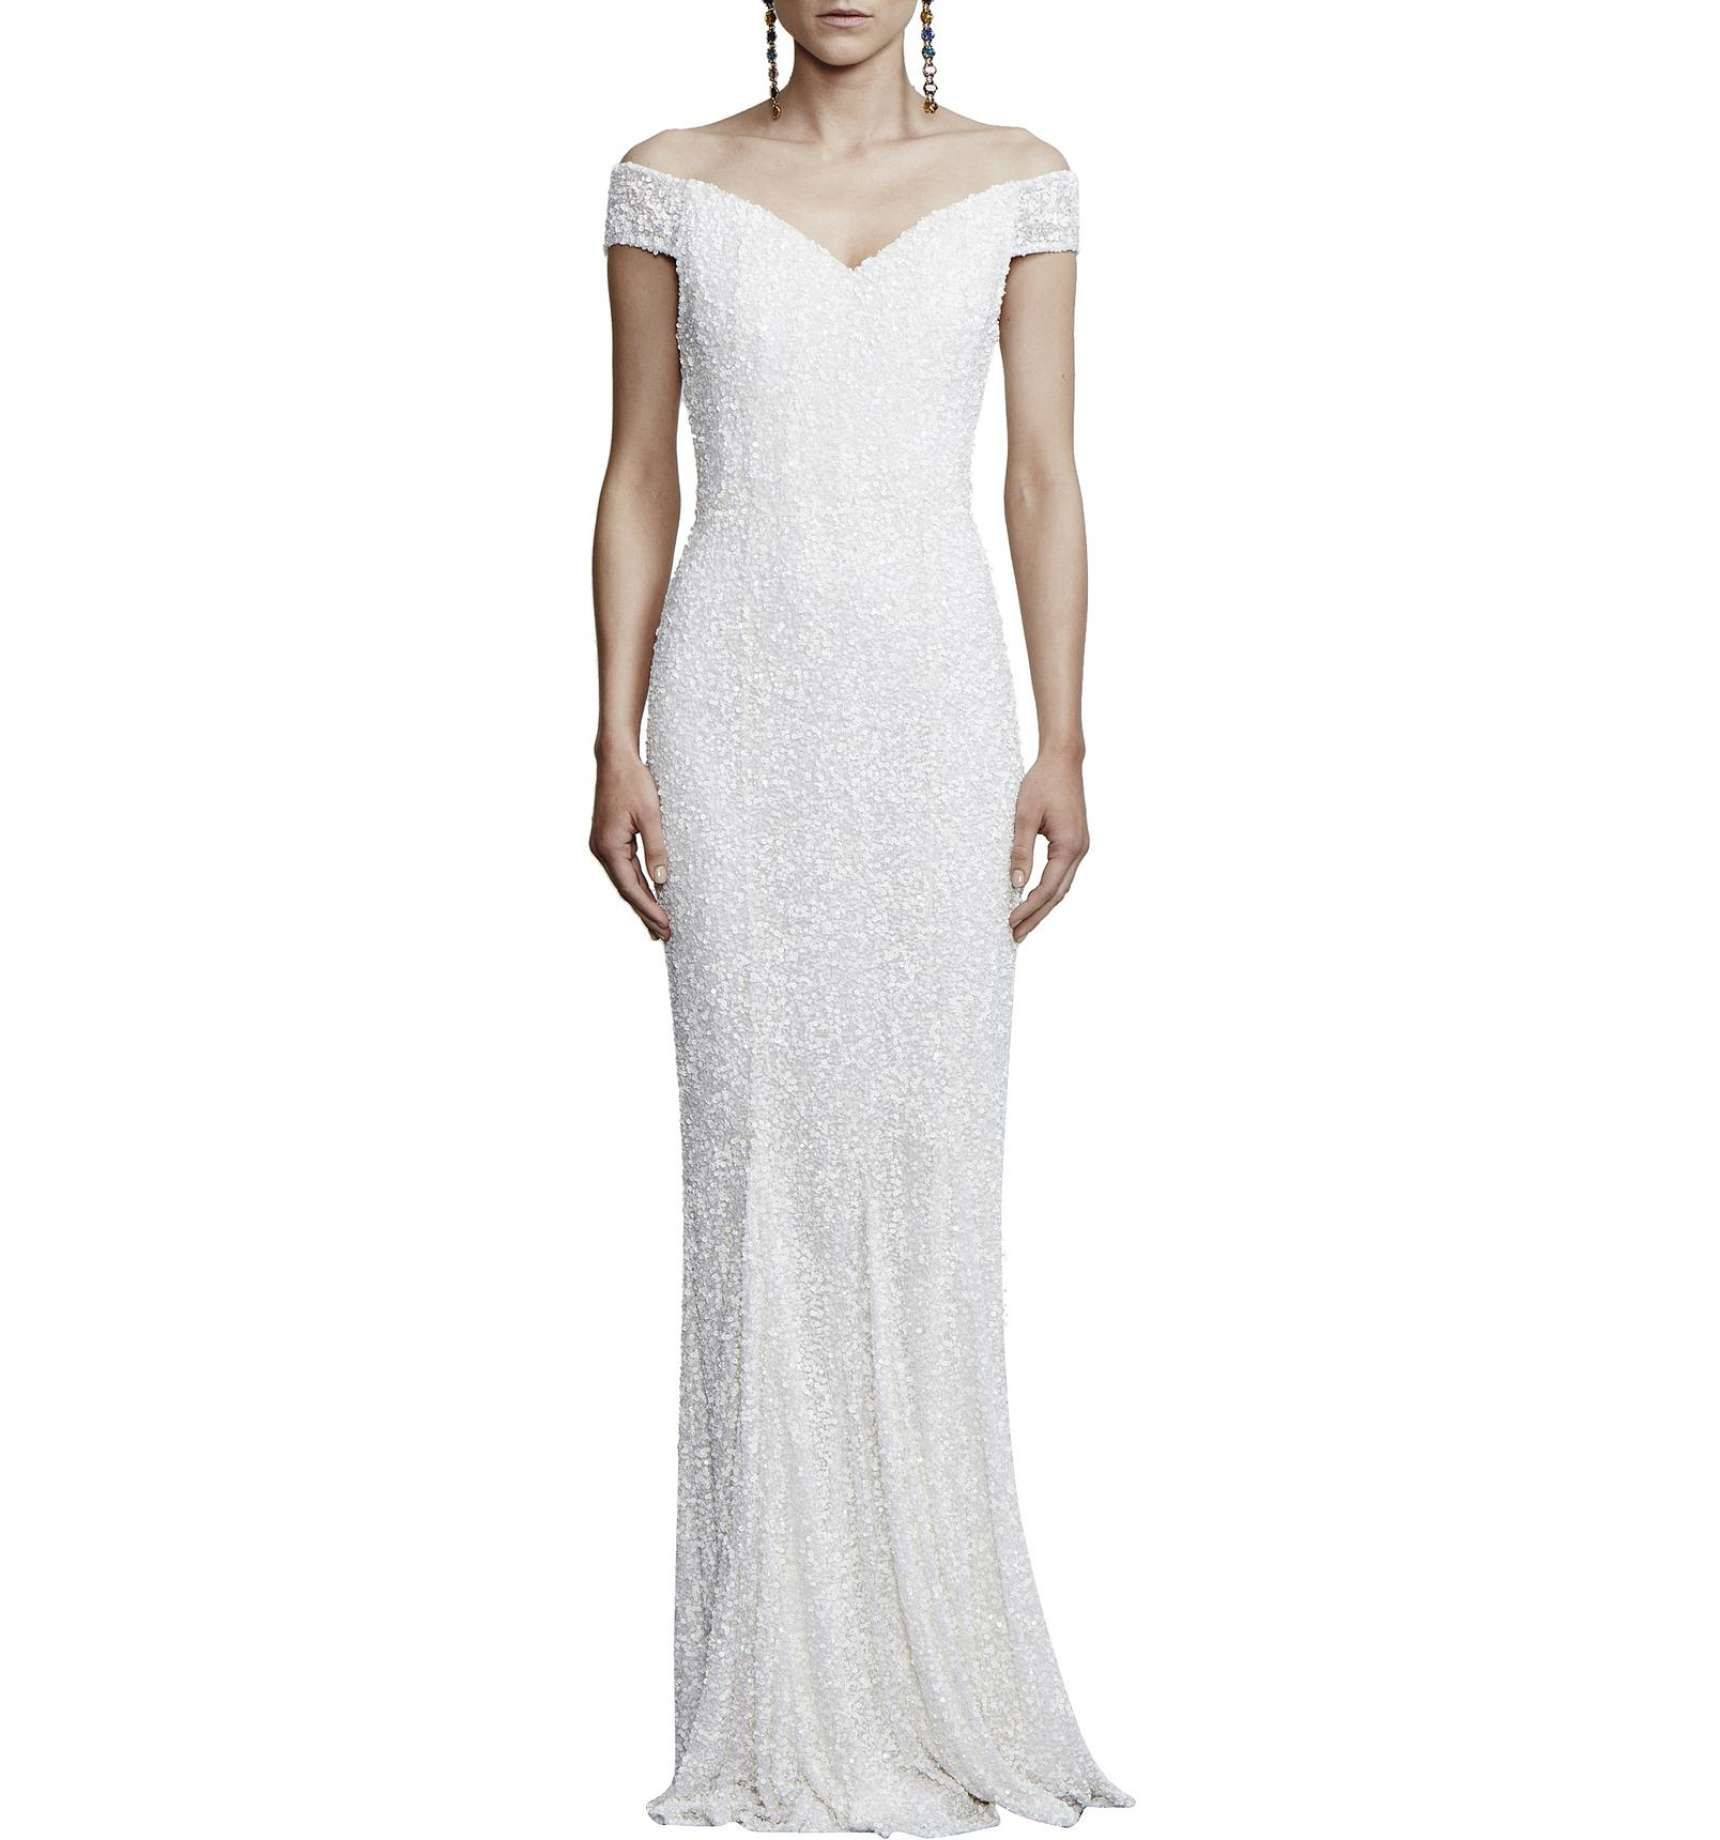 Essi Gown | David Jones | White Dress | Pinterest | David jones and ...